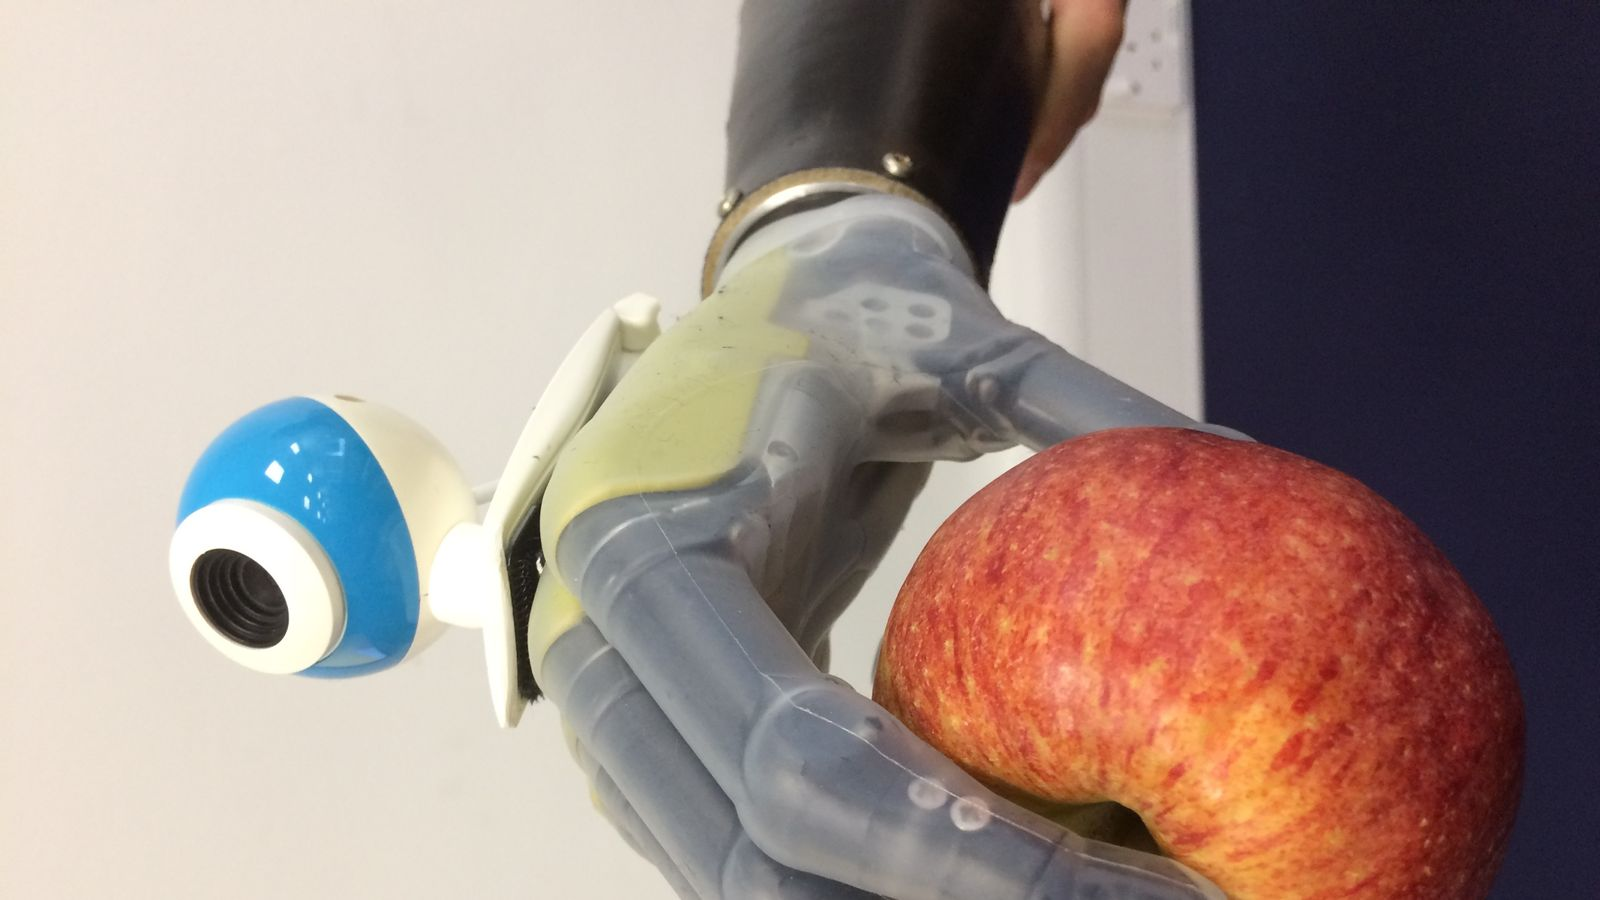 prosthetic limb research paper Revolutionizing prosthetics is an ambitious multiyear program—funded by the defense advanced research projects agency  the modular prosthetic limb.